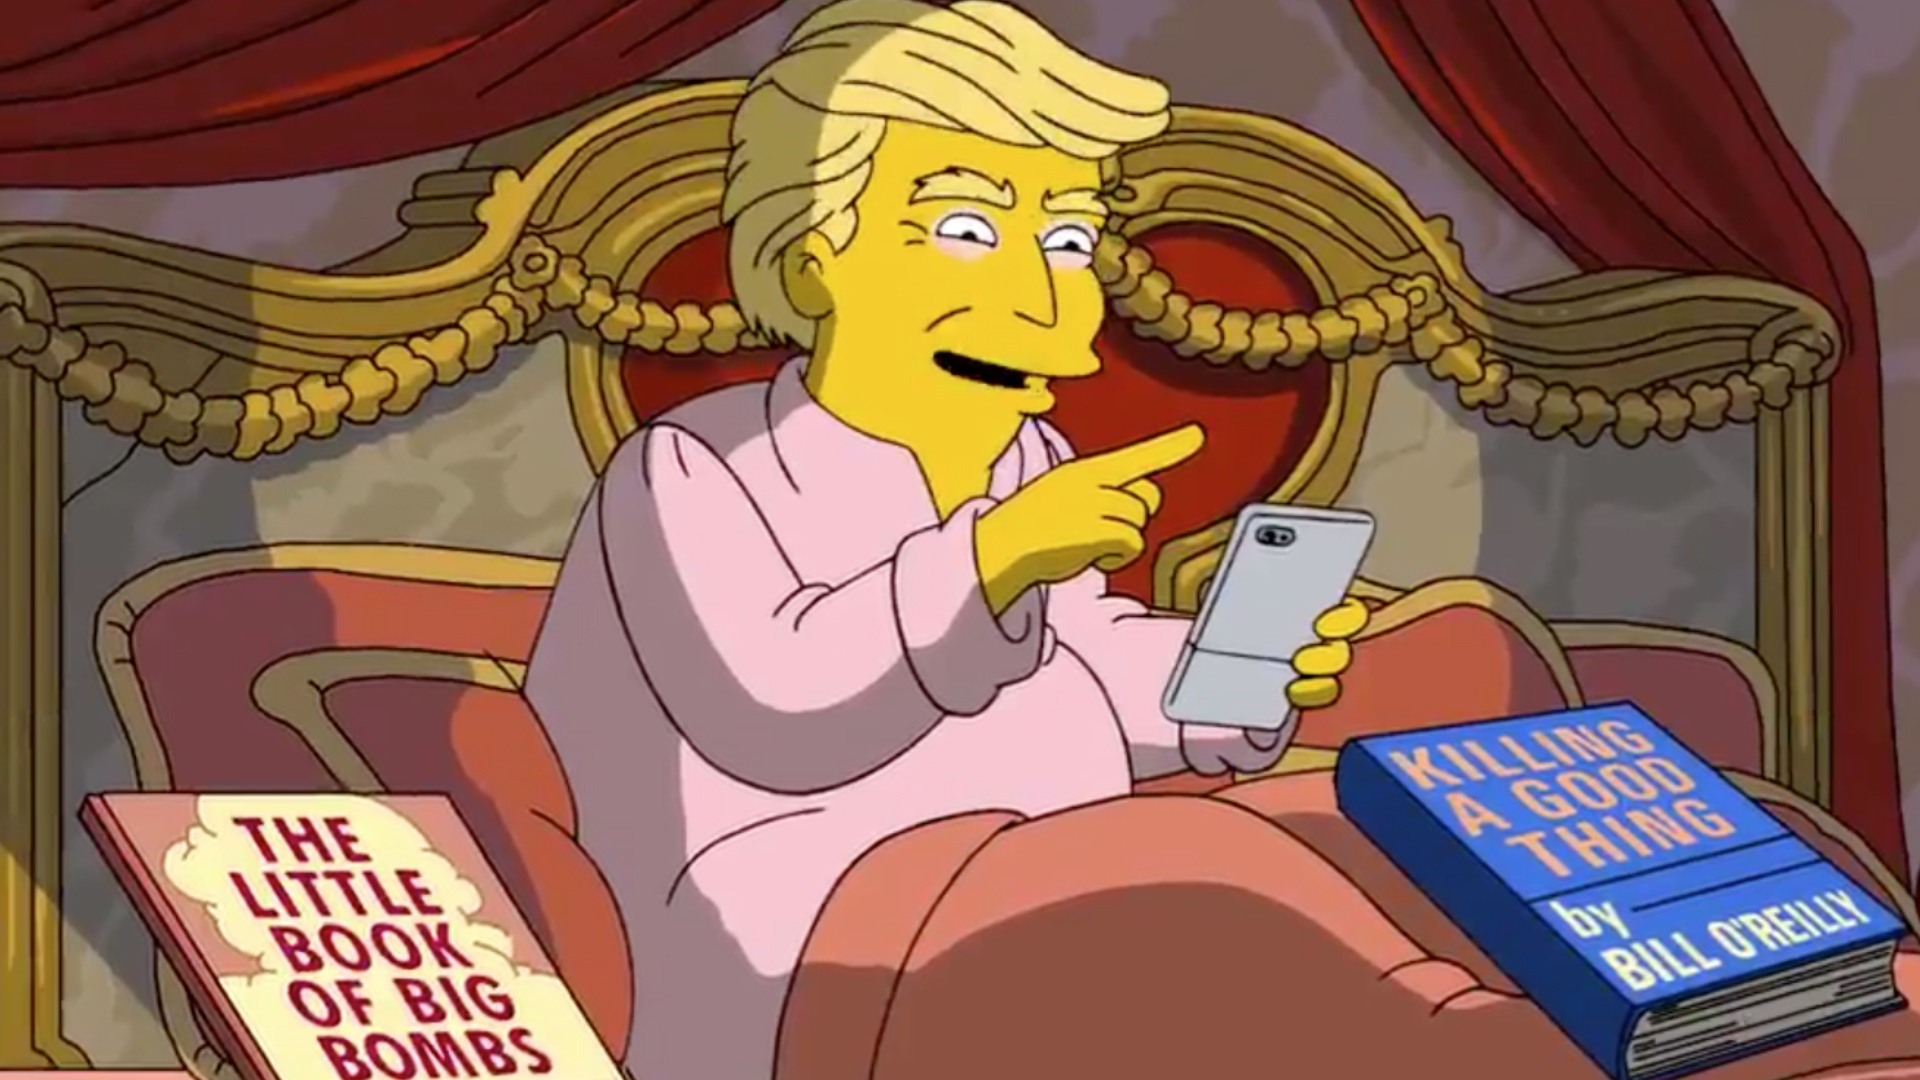 Donald Trump savaged by The simpsons